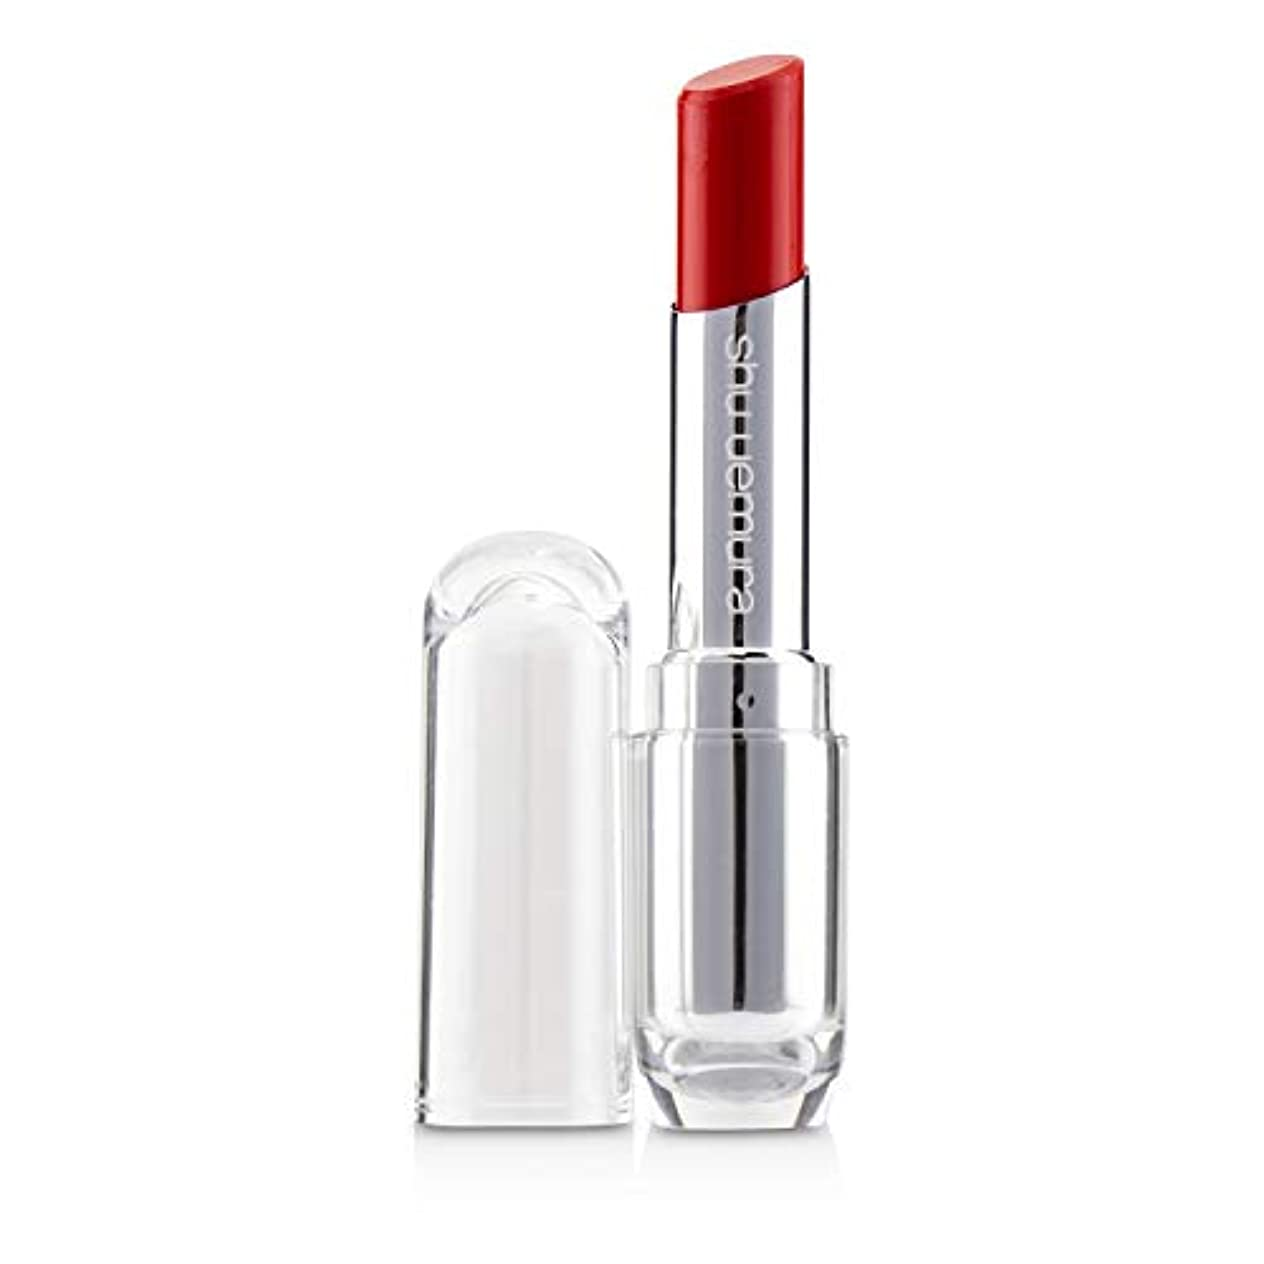 シュウウエムラ Rouge Unlimited Sheer Shine Lipstick - # S RD 150 3.2g/0.11oz並行輸入品